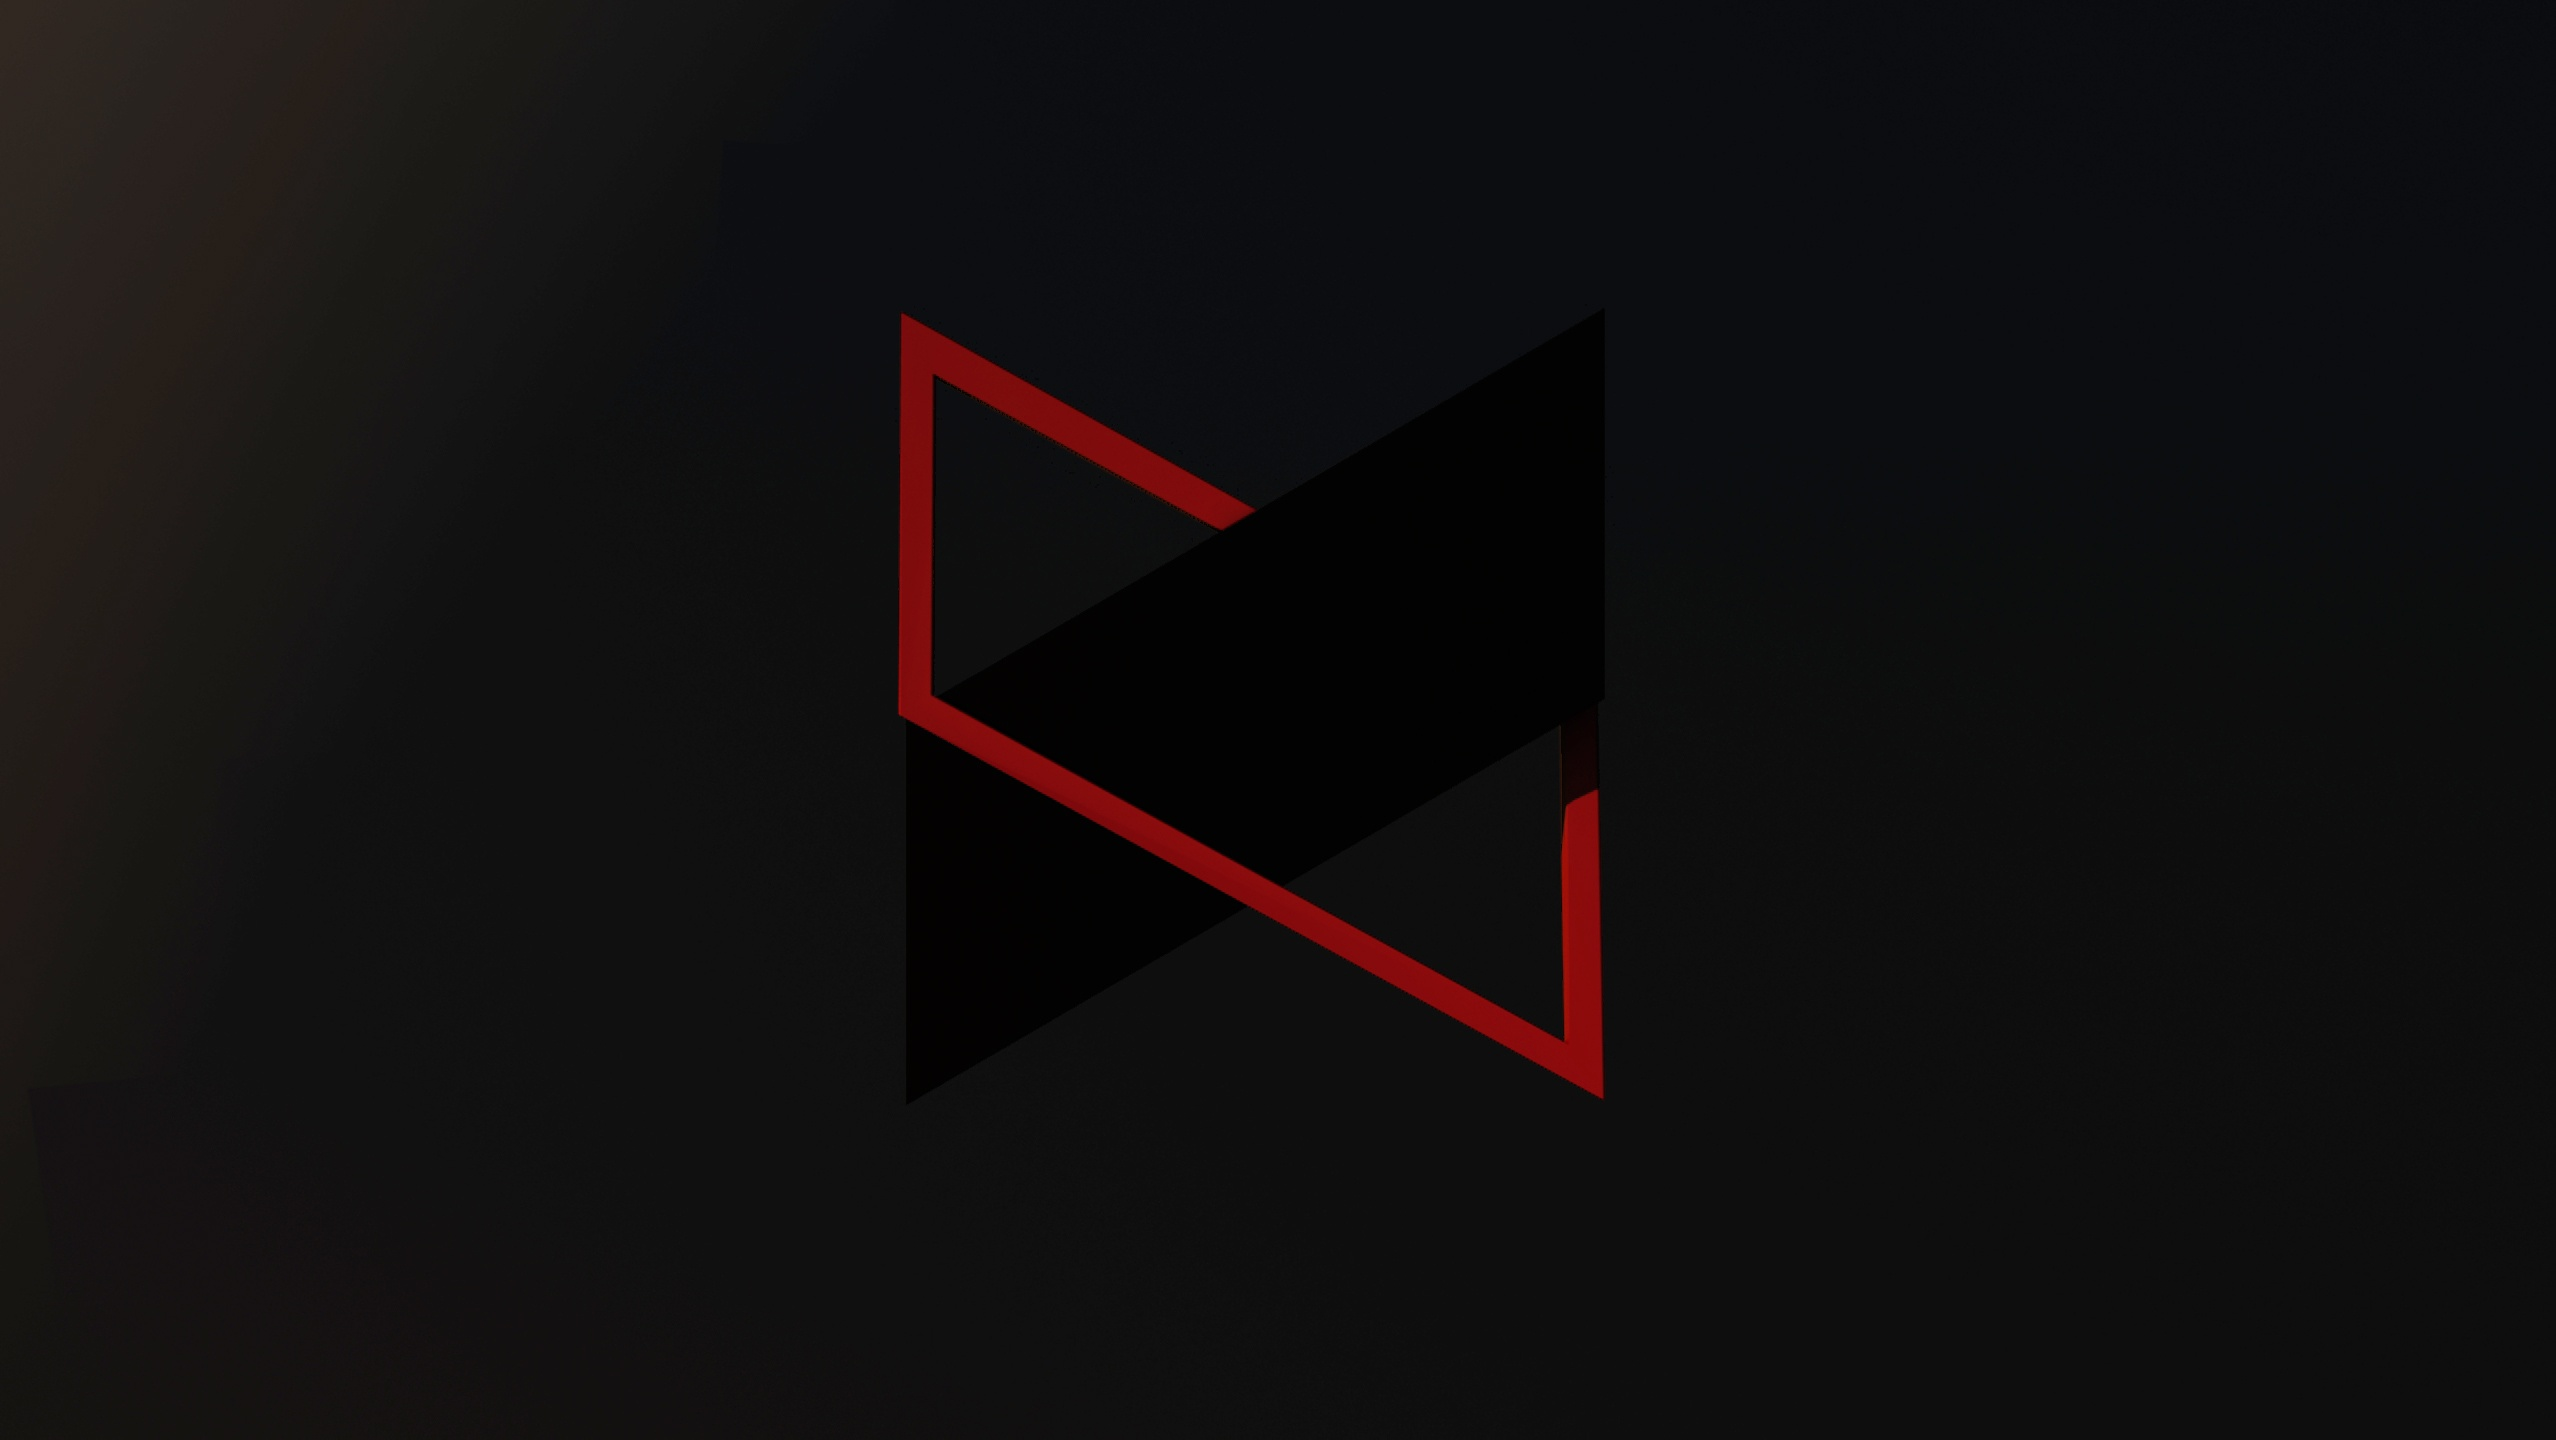 MKBHD Wallpapers